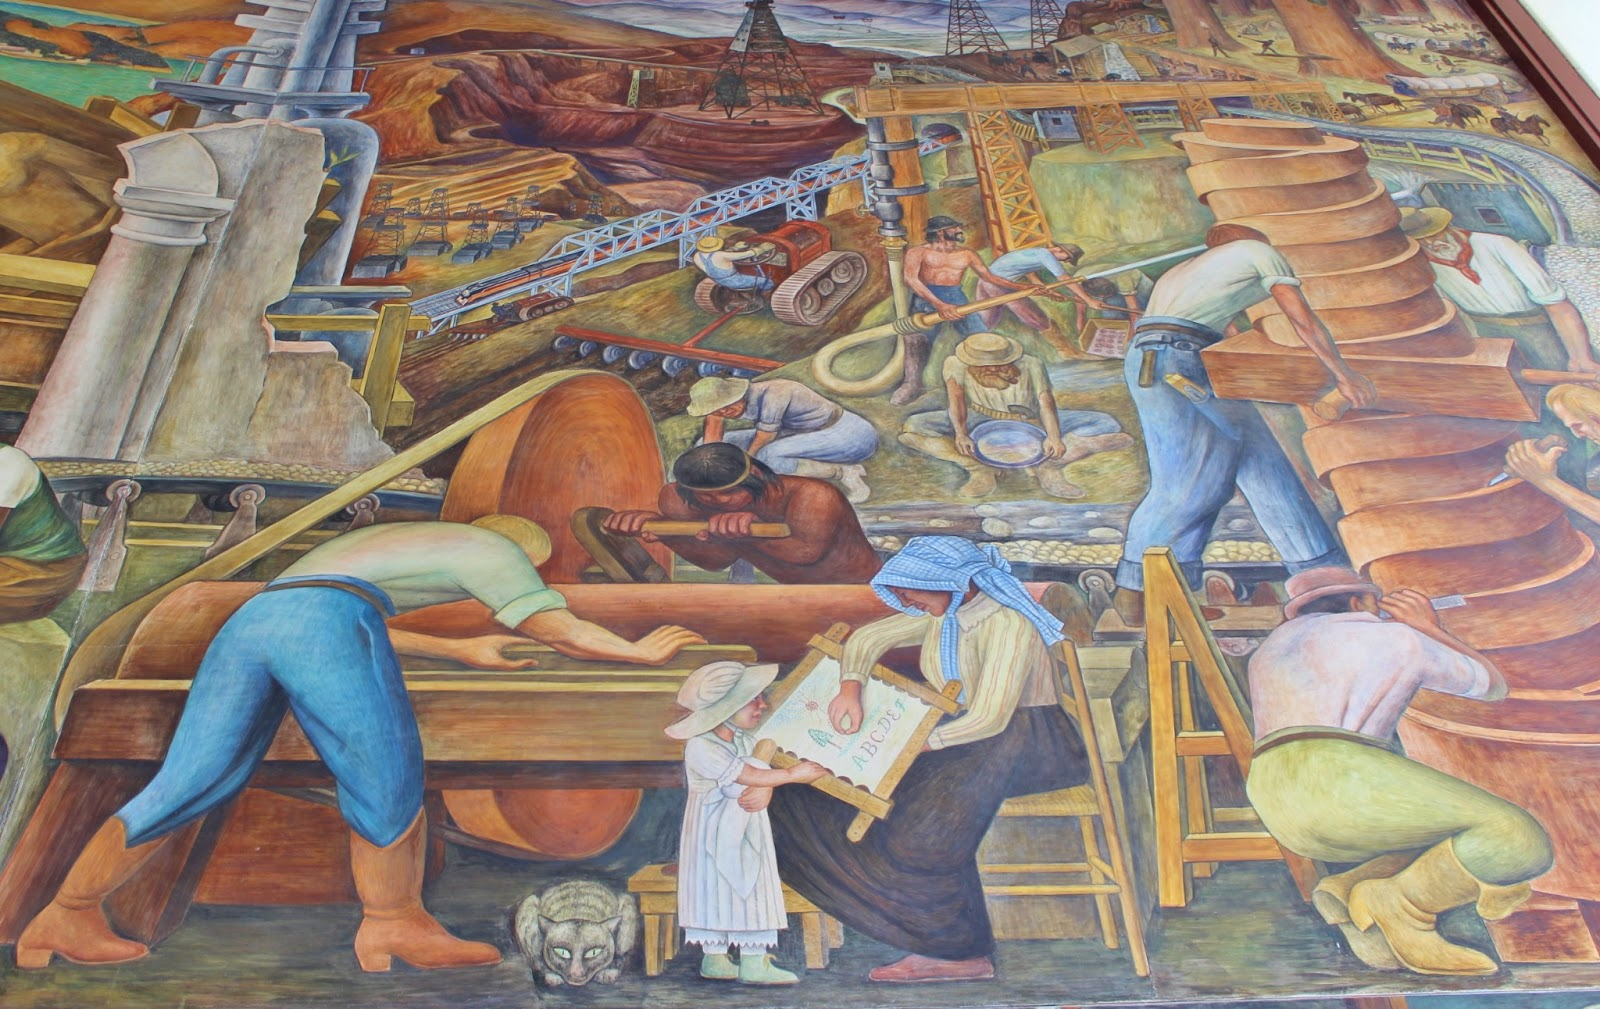 Bay area arts diego rivera 39 s pan american unity mural for Diego rivera mural san francisco